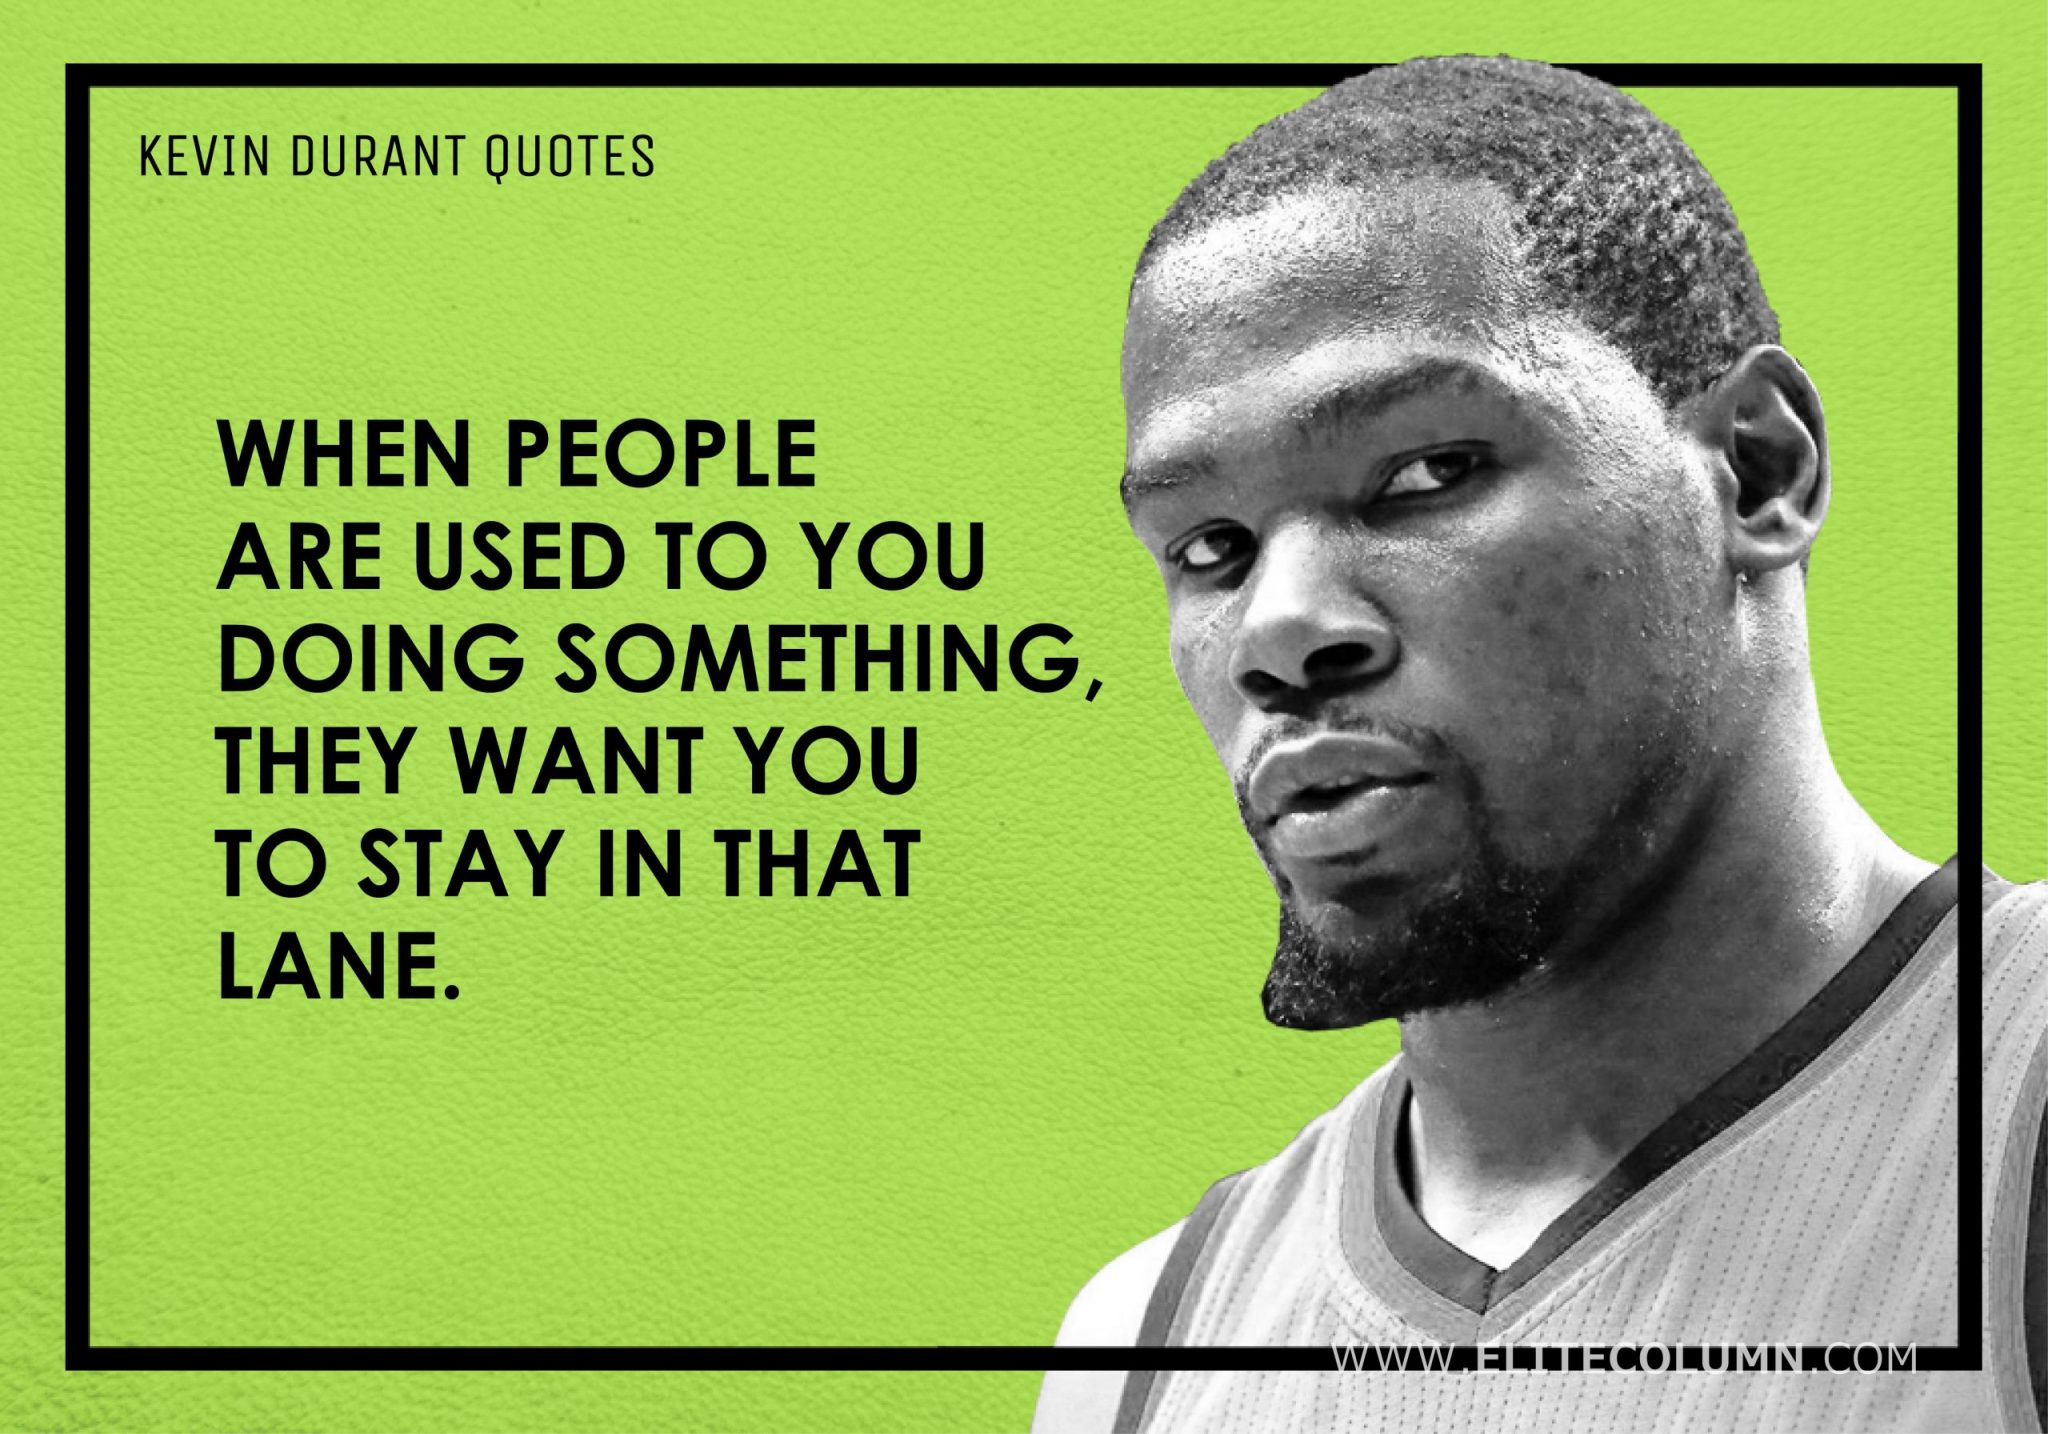 Kevin Durant Quotes (8)